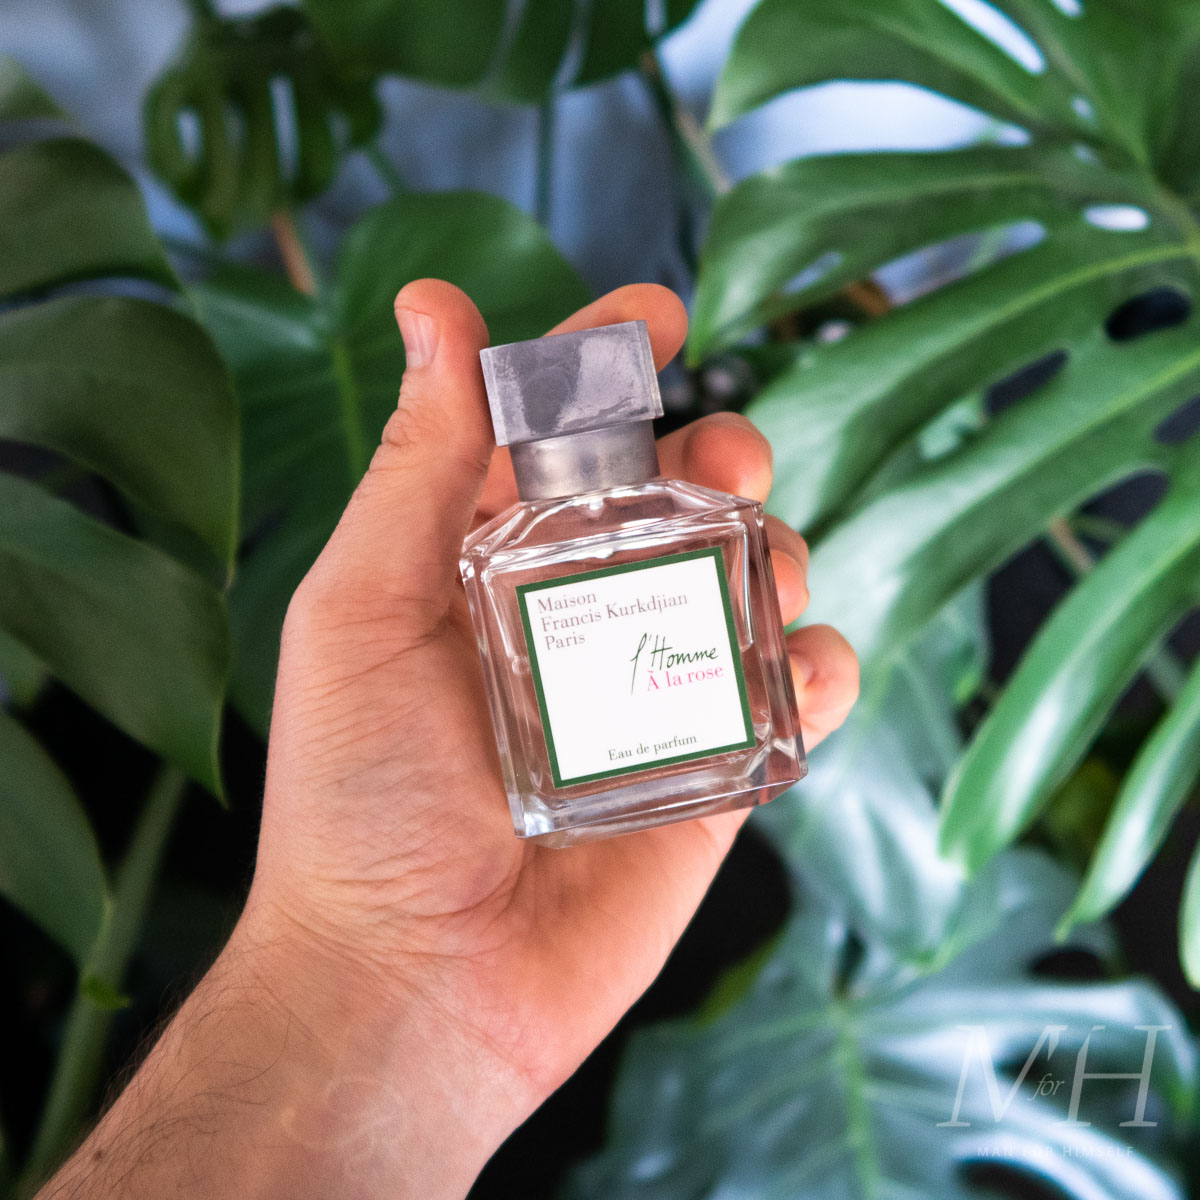 maison-francis-kurkdjian-lhomme-a-la-rose-fragrance-grooming-product-review-man-for-himself